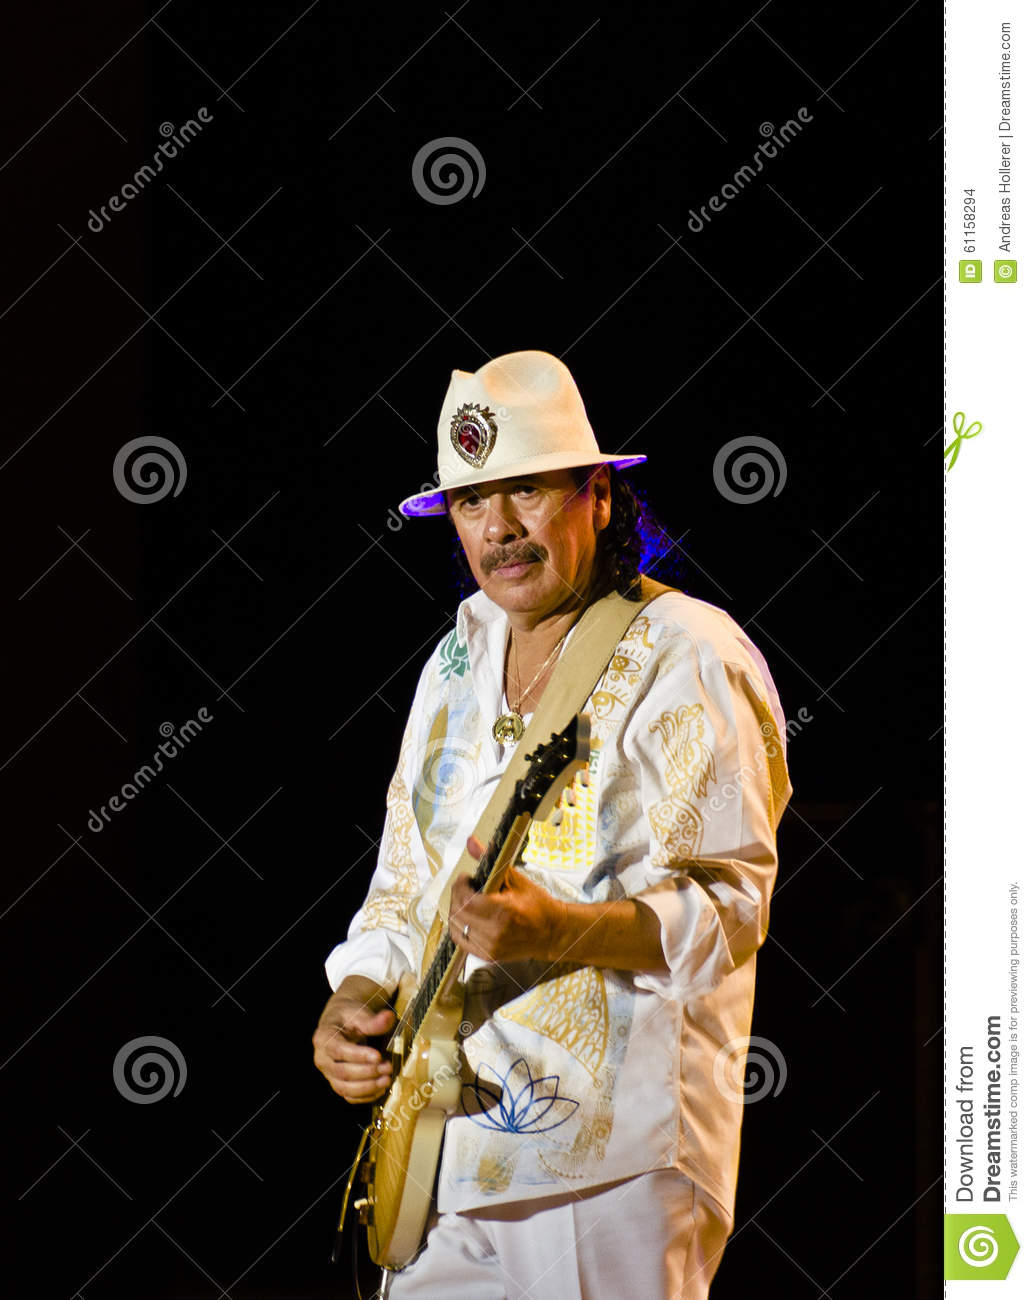 a biography of carlos santana a cuban guitar player Albums with an afro-cuban and latin rock feel thanks to carlos' exquisite  guitar player presents carlos santana,  carlos santana: a biography,.